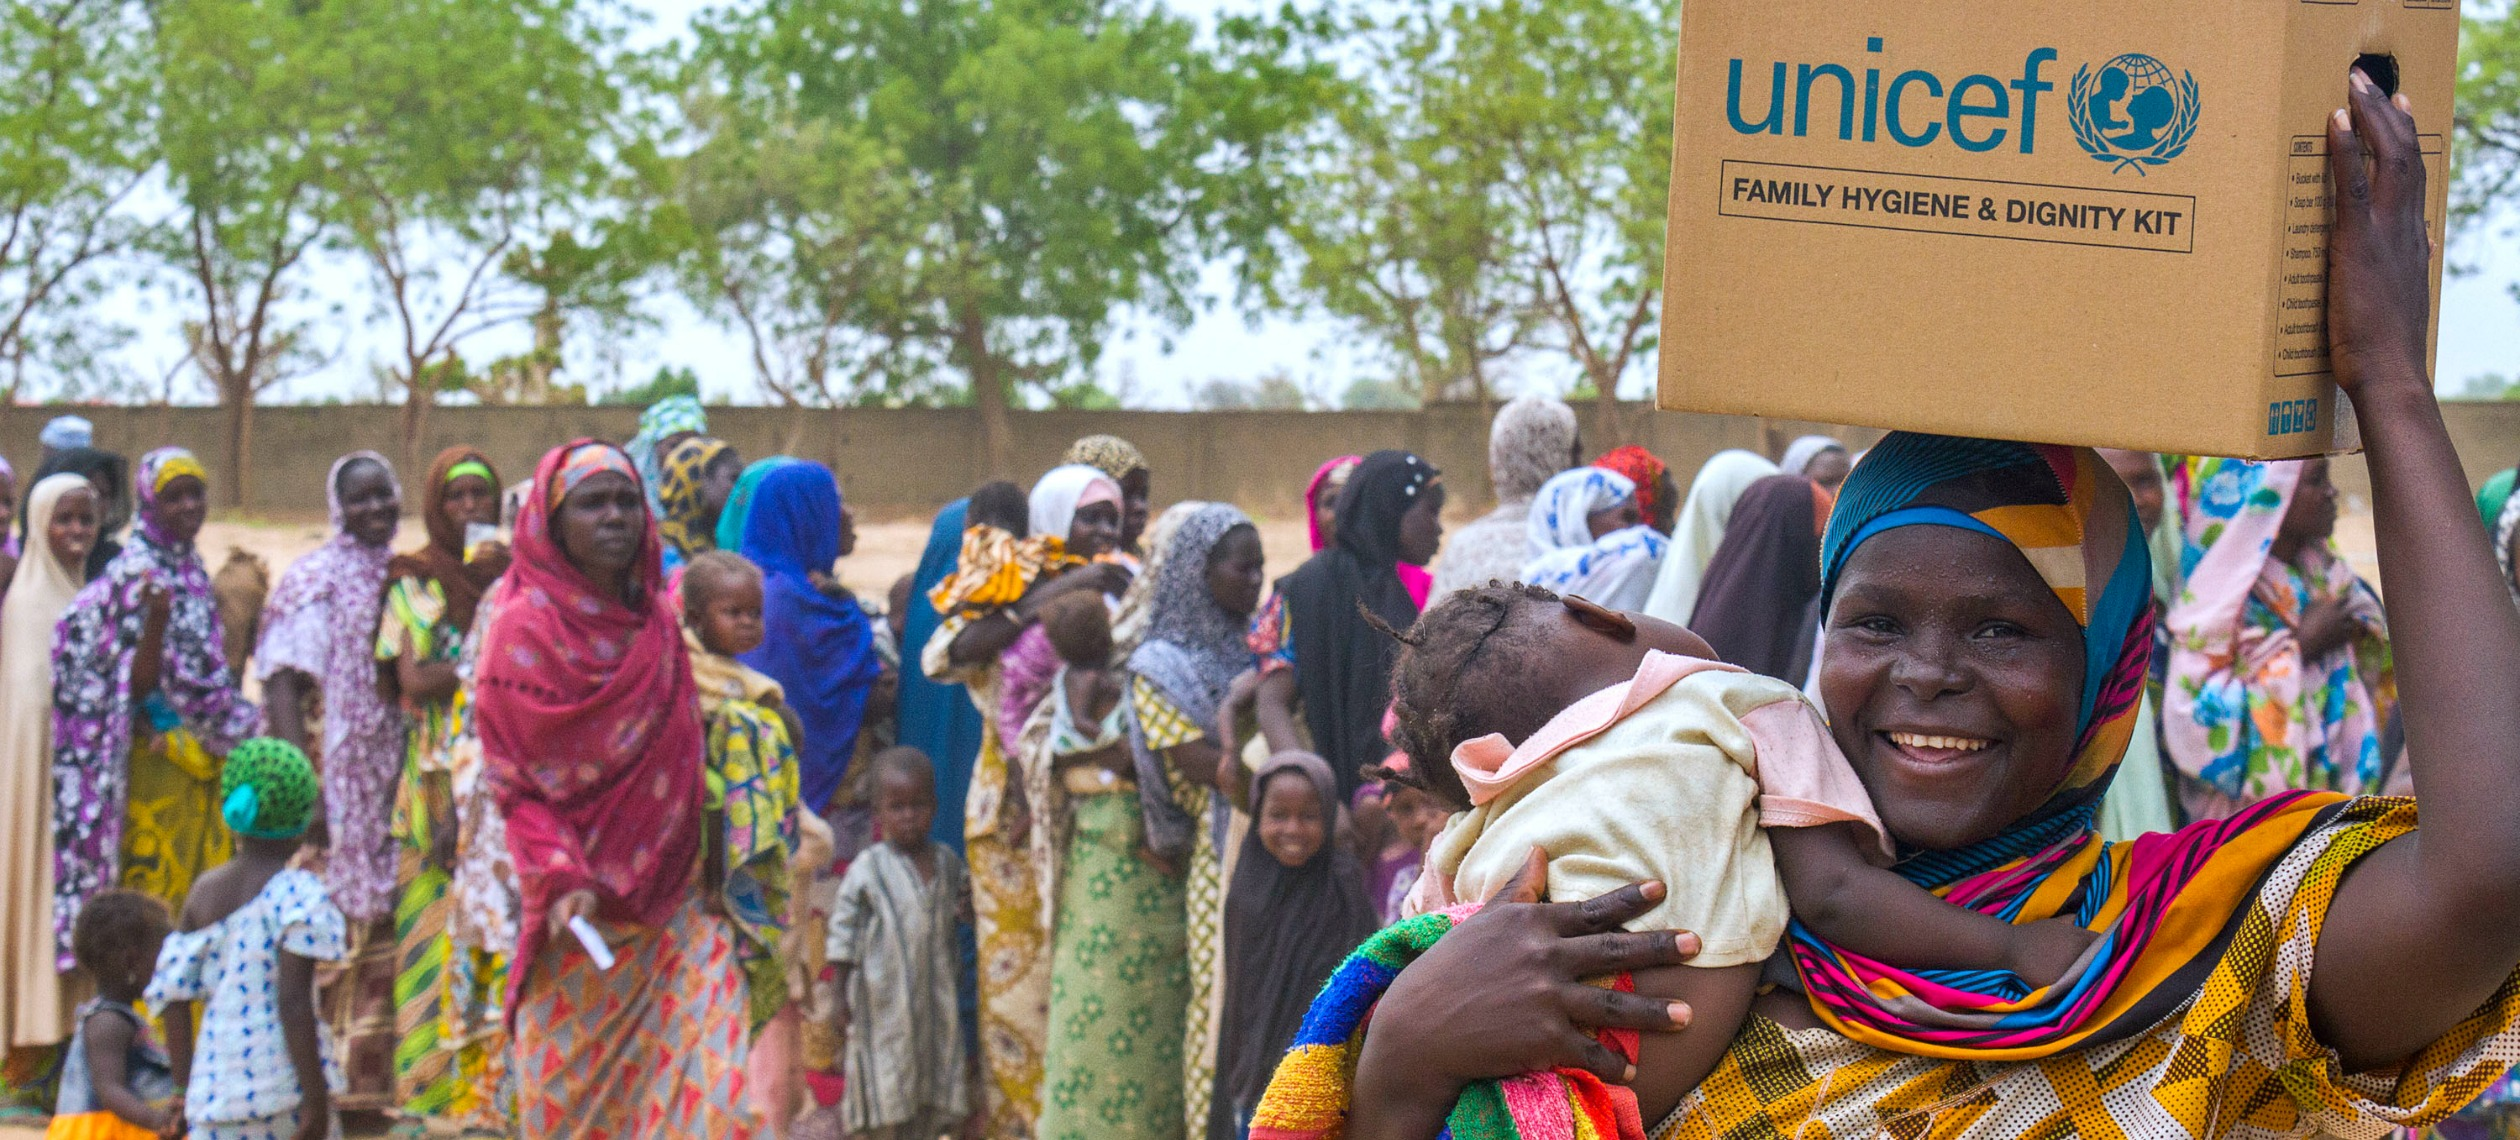 Women holding her baby and a UNICEF famly hygiene and dignity kit on her head